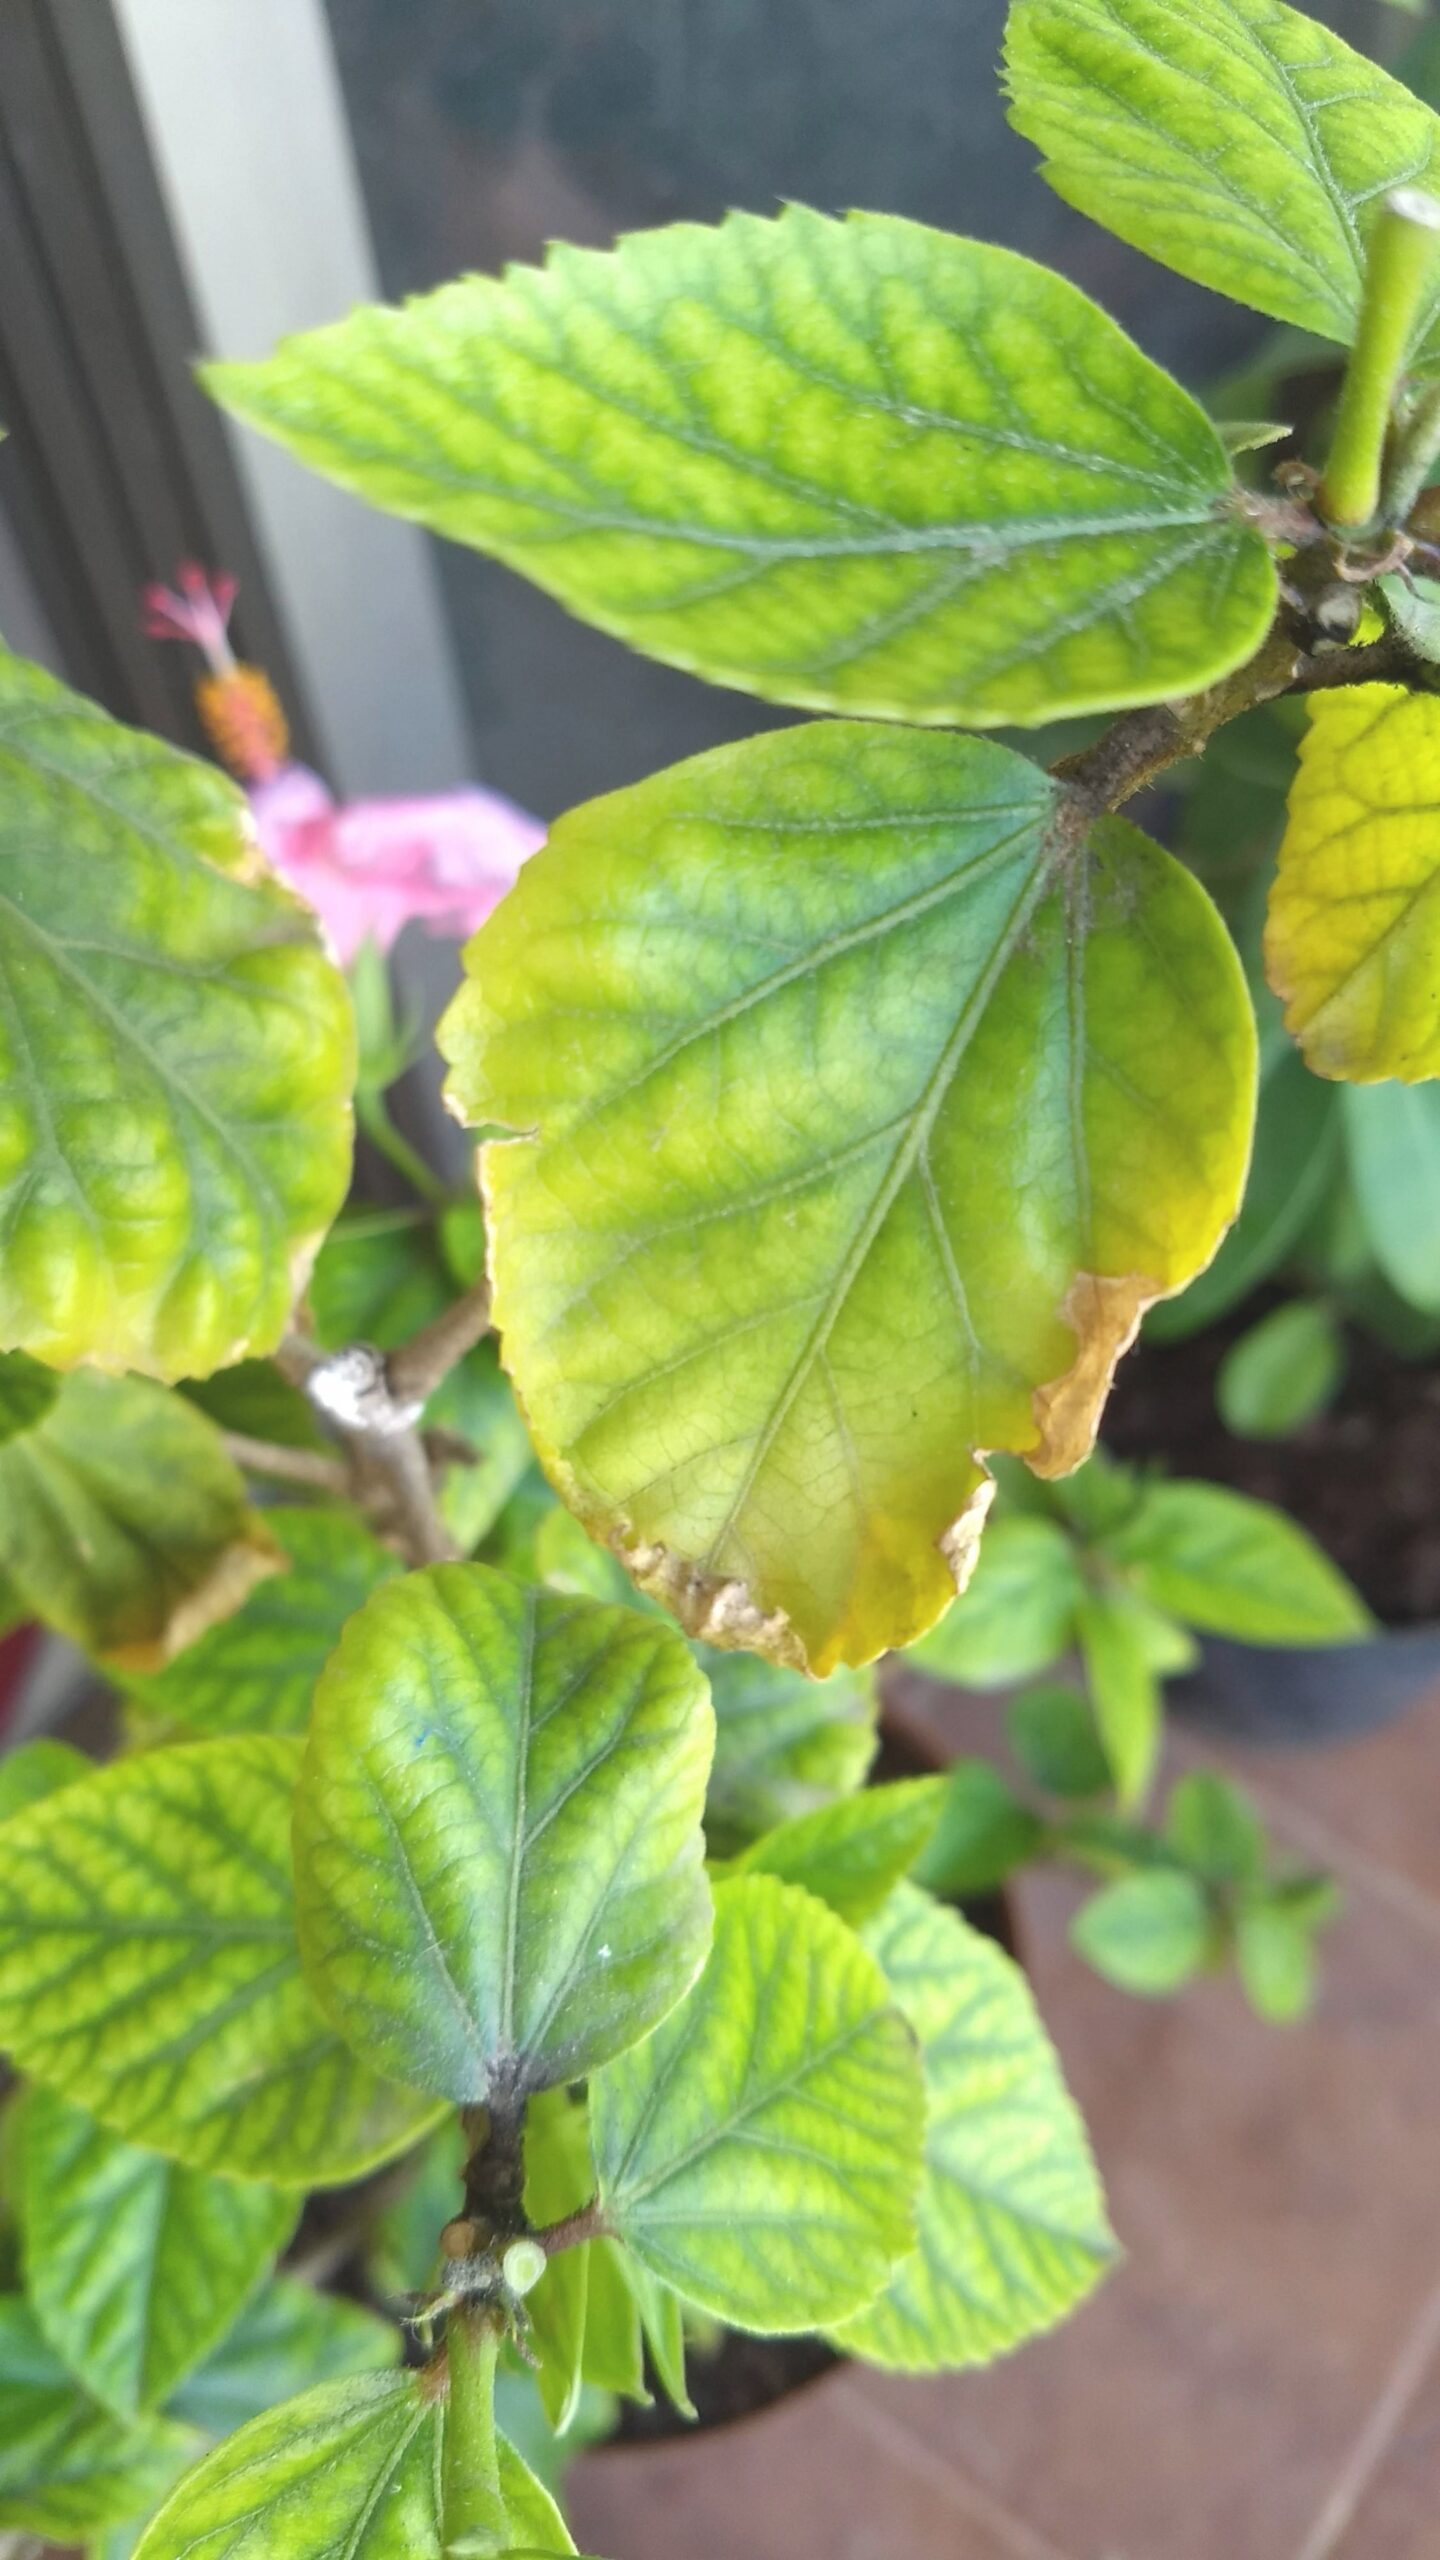 Diagnosis - Hibiscus Problems - Gardening & Landscaping throughout Hibiscus Leaves Turning Yellow